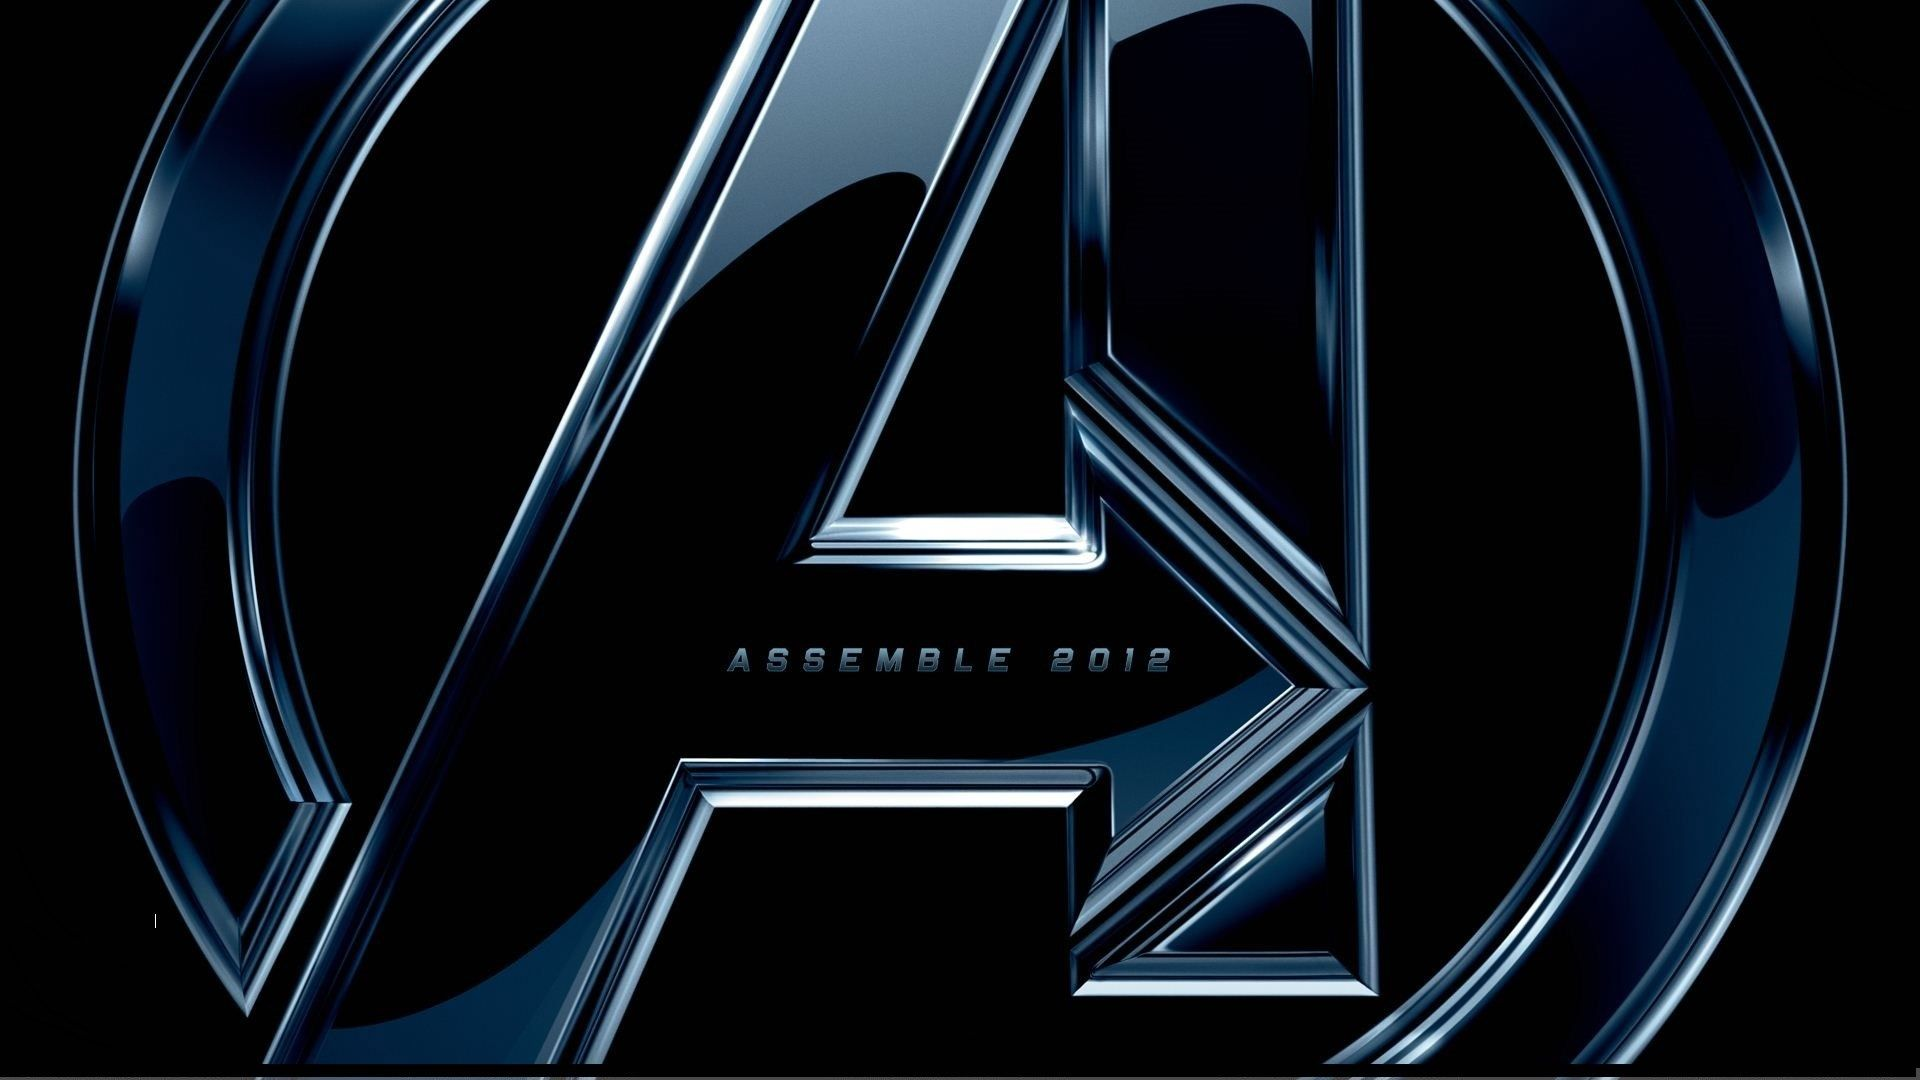 the avengers logo on black background wallpapers hd